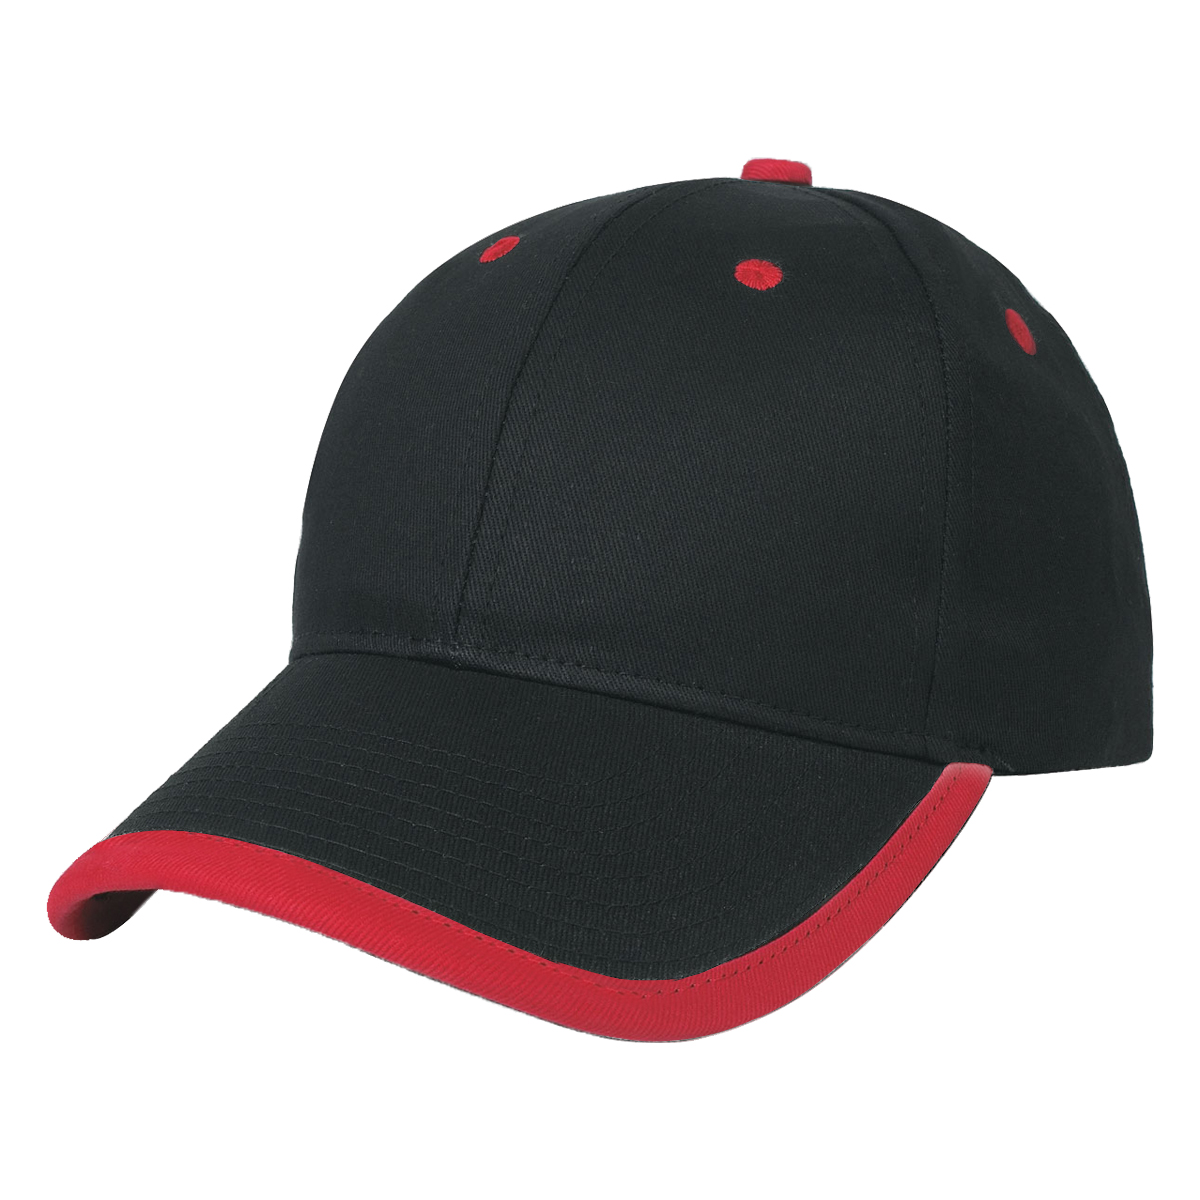 Black w/ Red Accents Price Buster Cap with Visor Trim